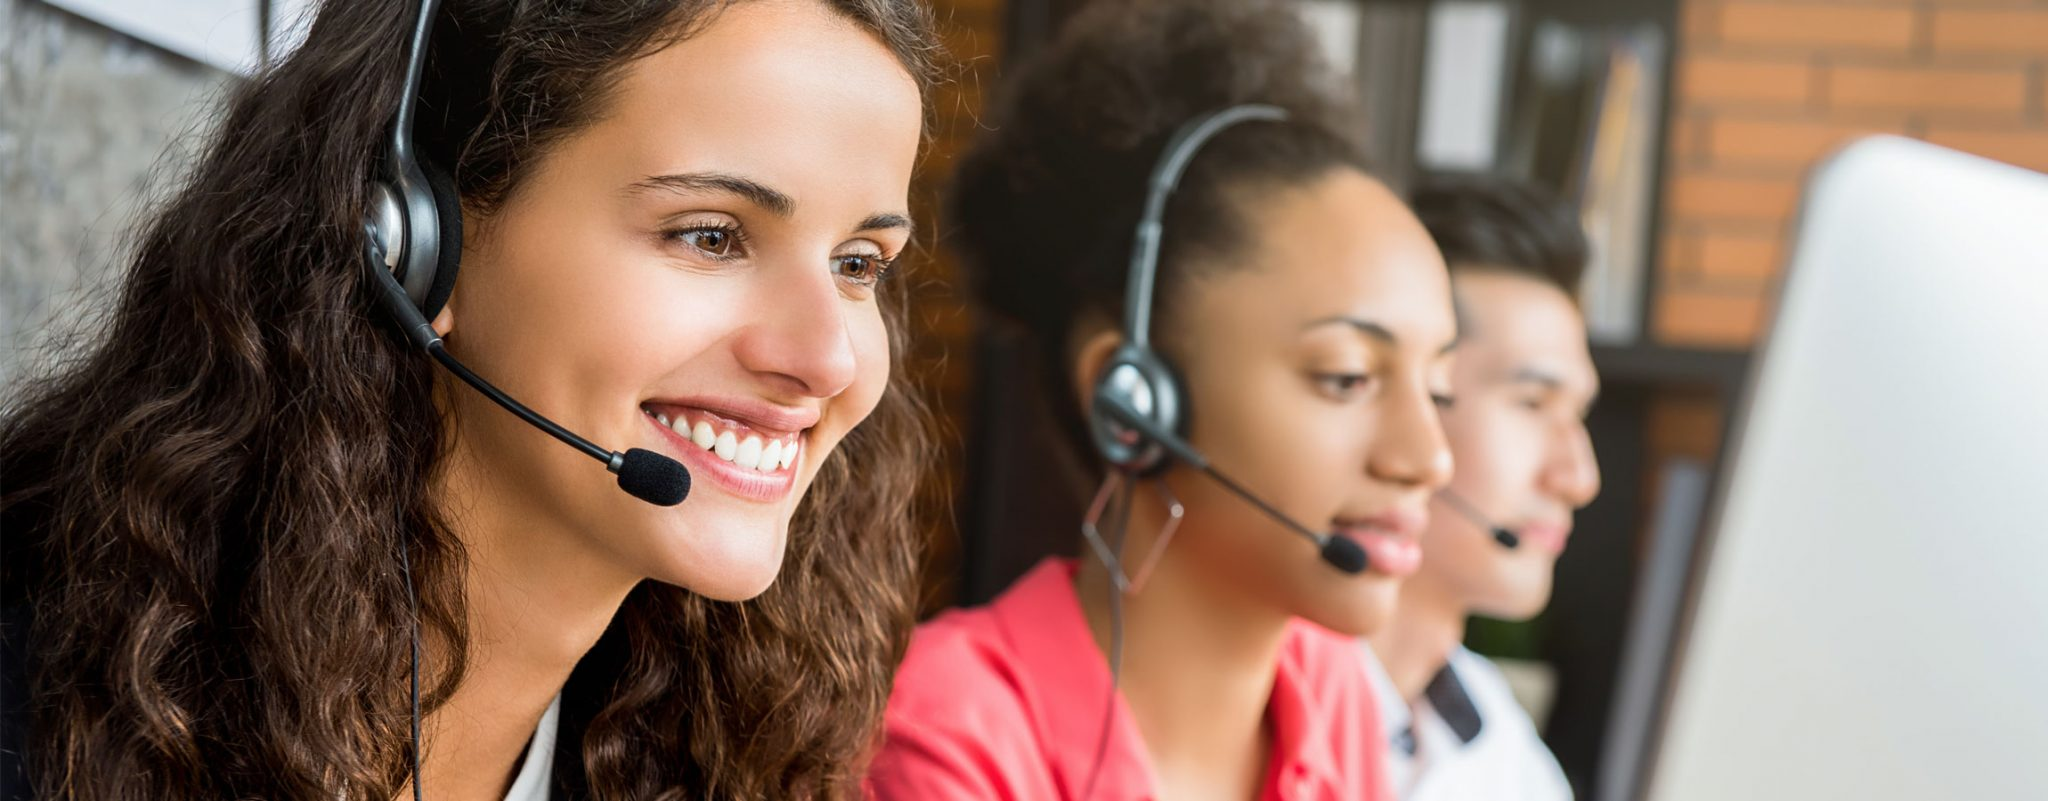 In numbers: The value of friendly customer service